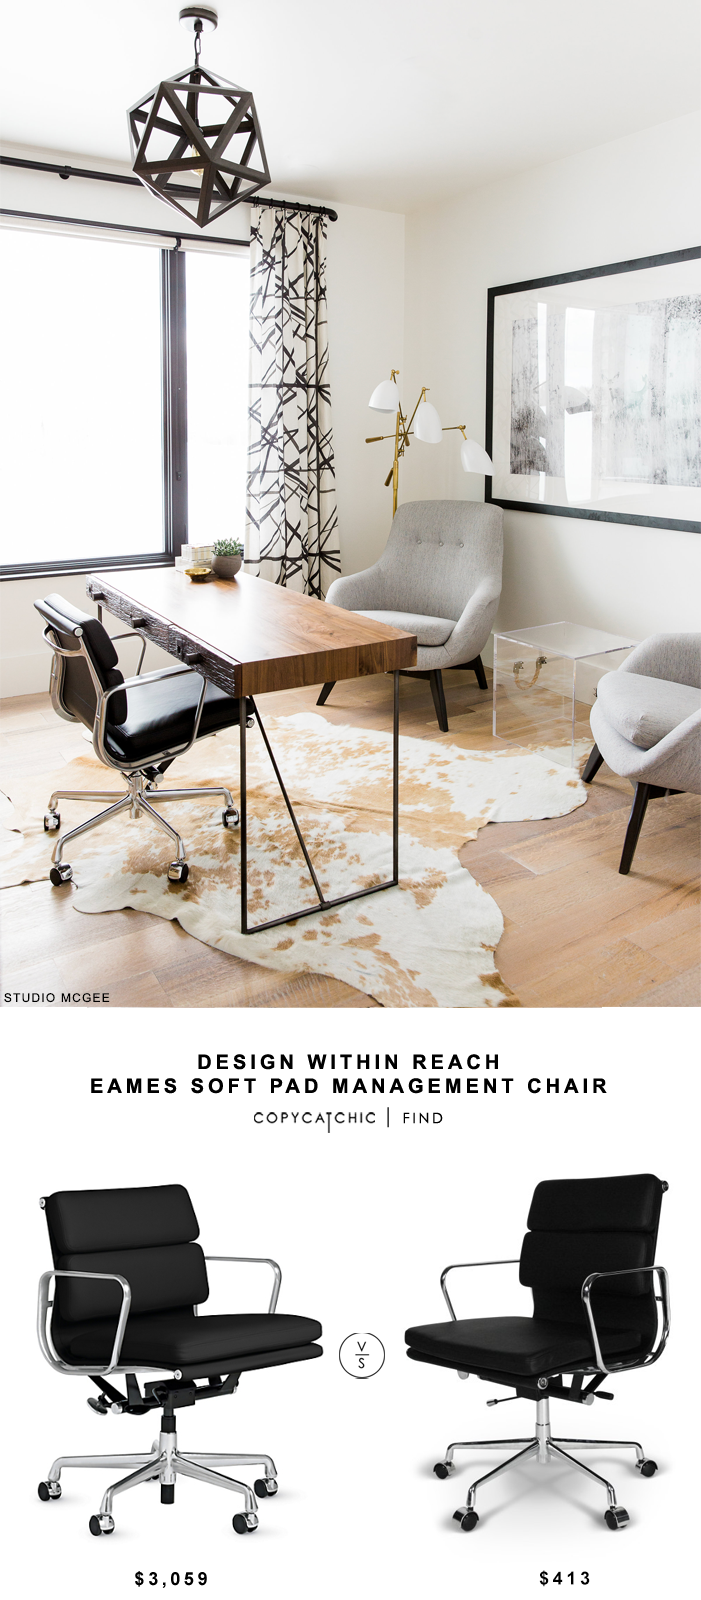 Design within reach eames soft pad management chair for Design eames